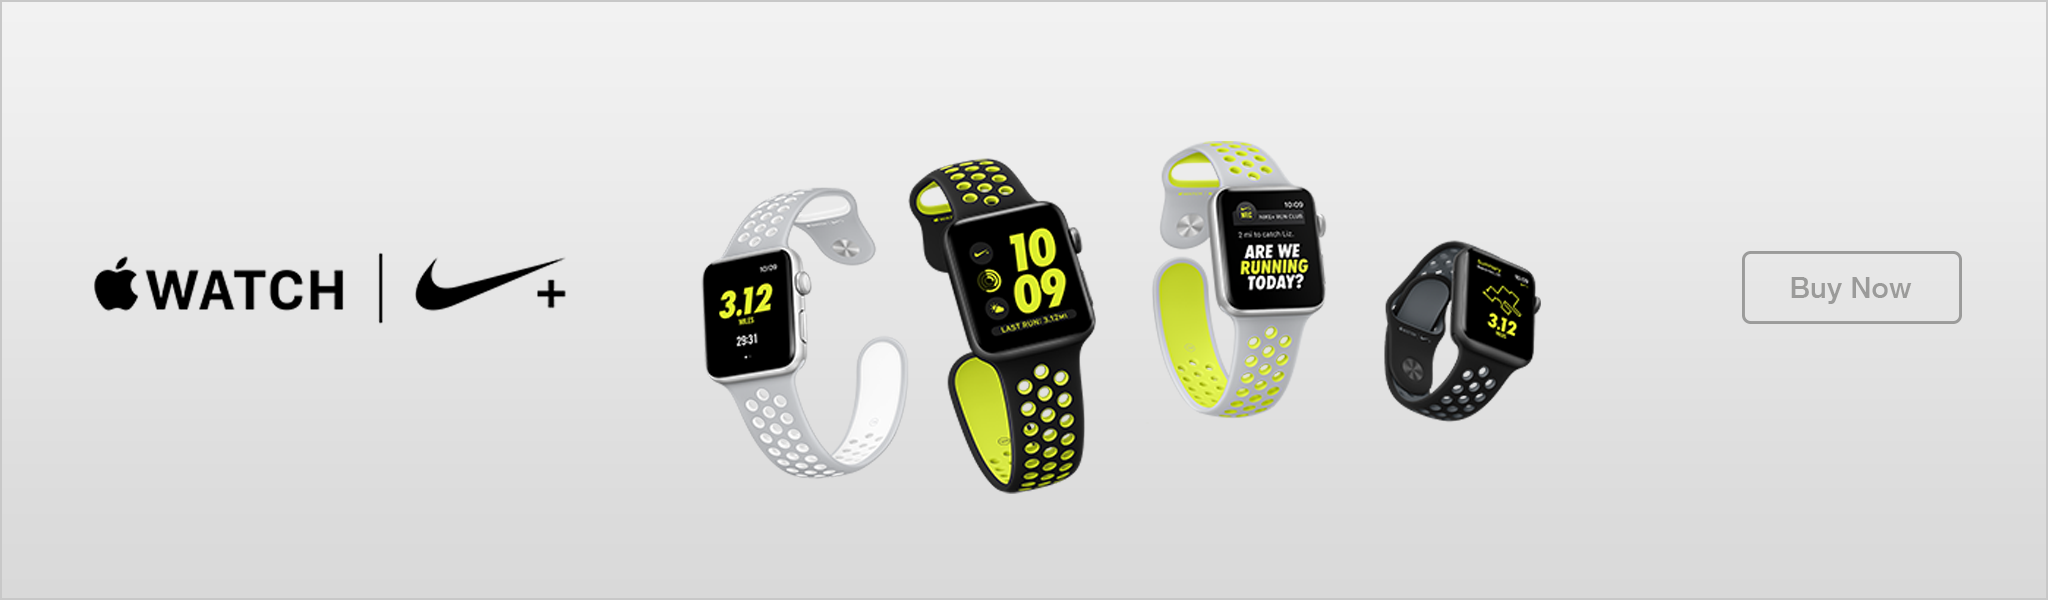 watch nike banner